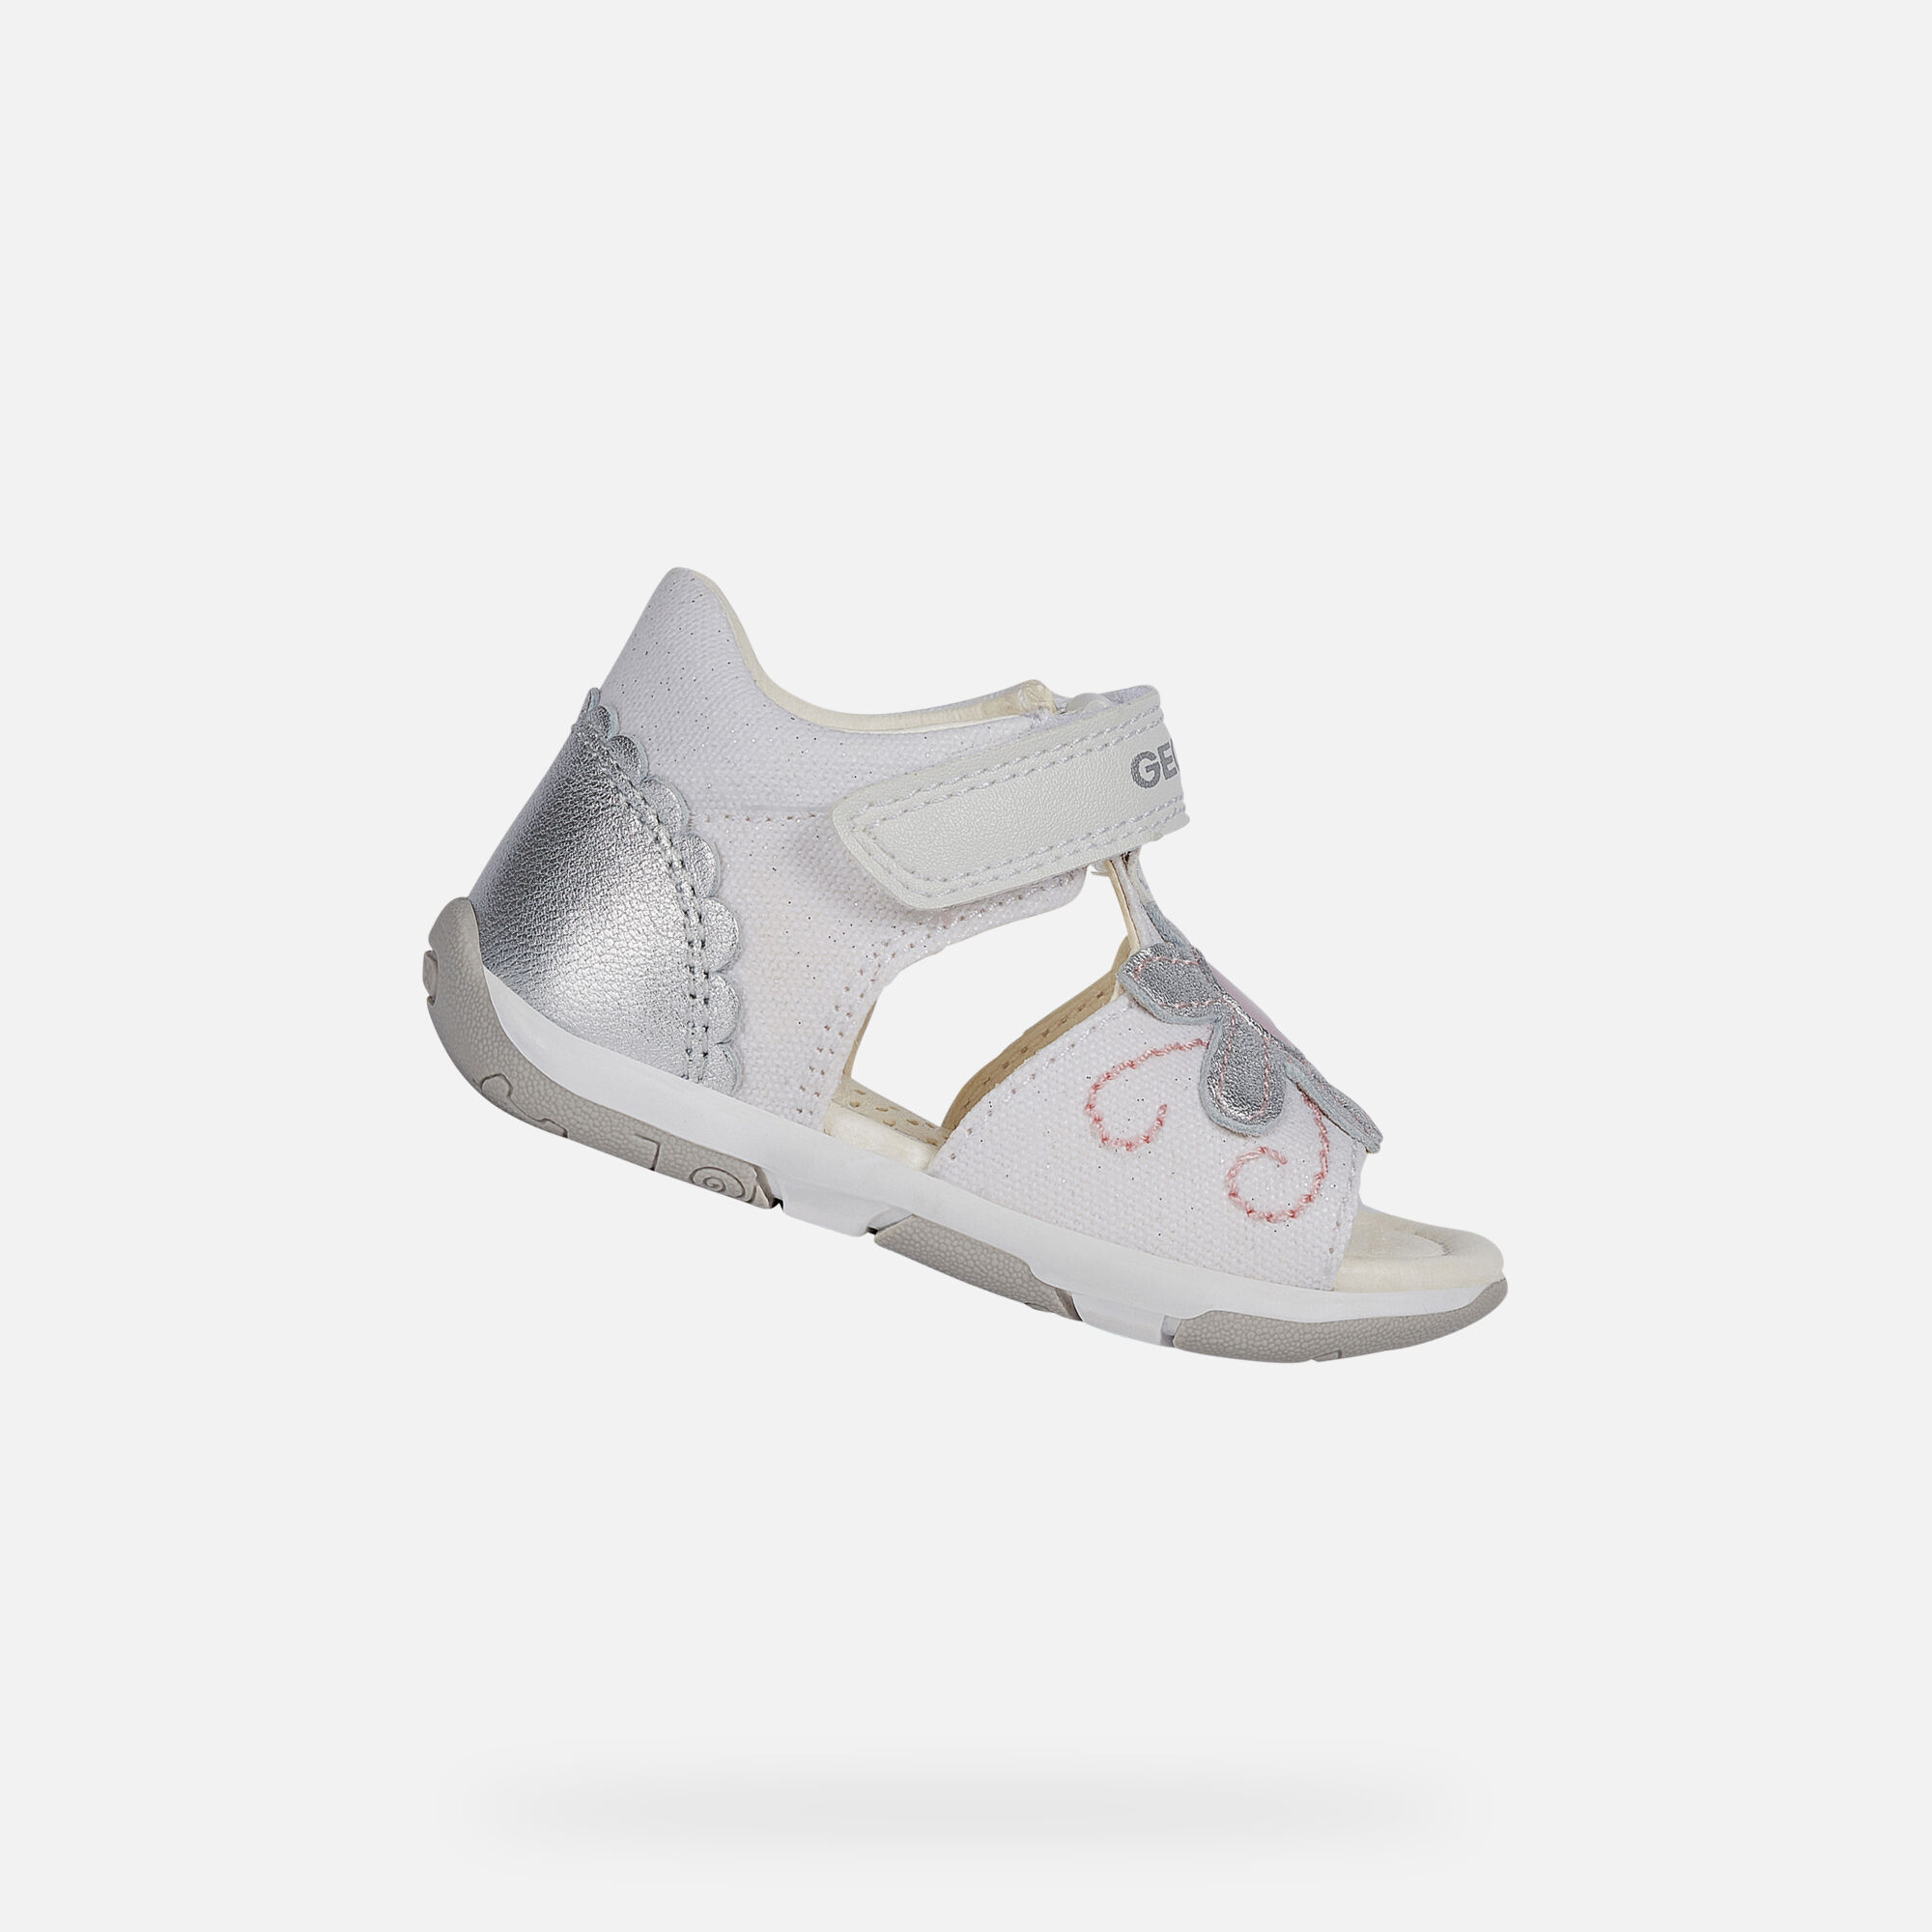 B SANDAL TAPUZ GIRL: White Silver Baby First Steps Shoes | Geox